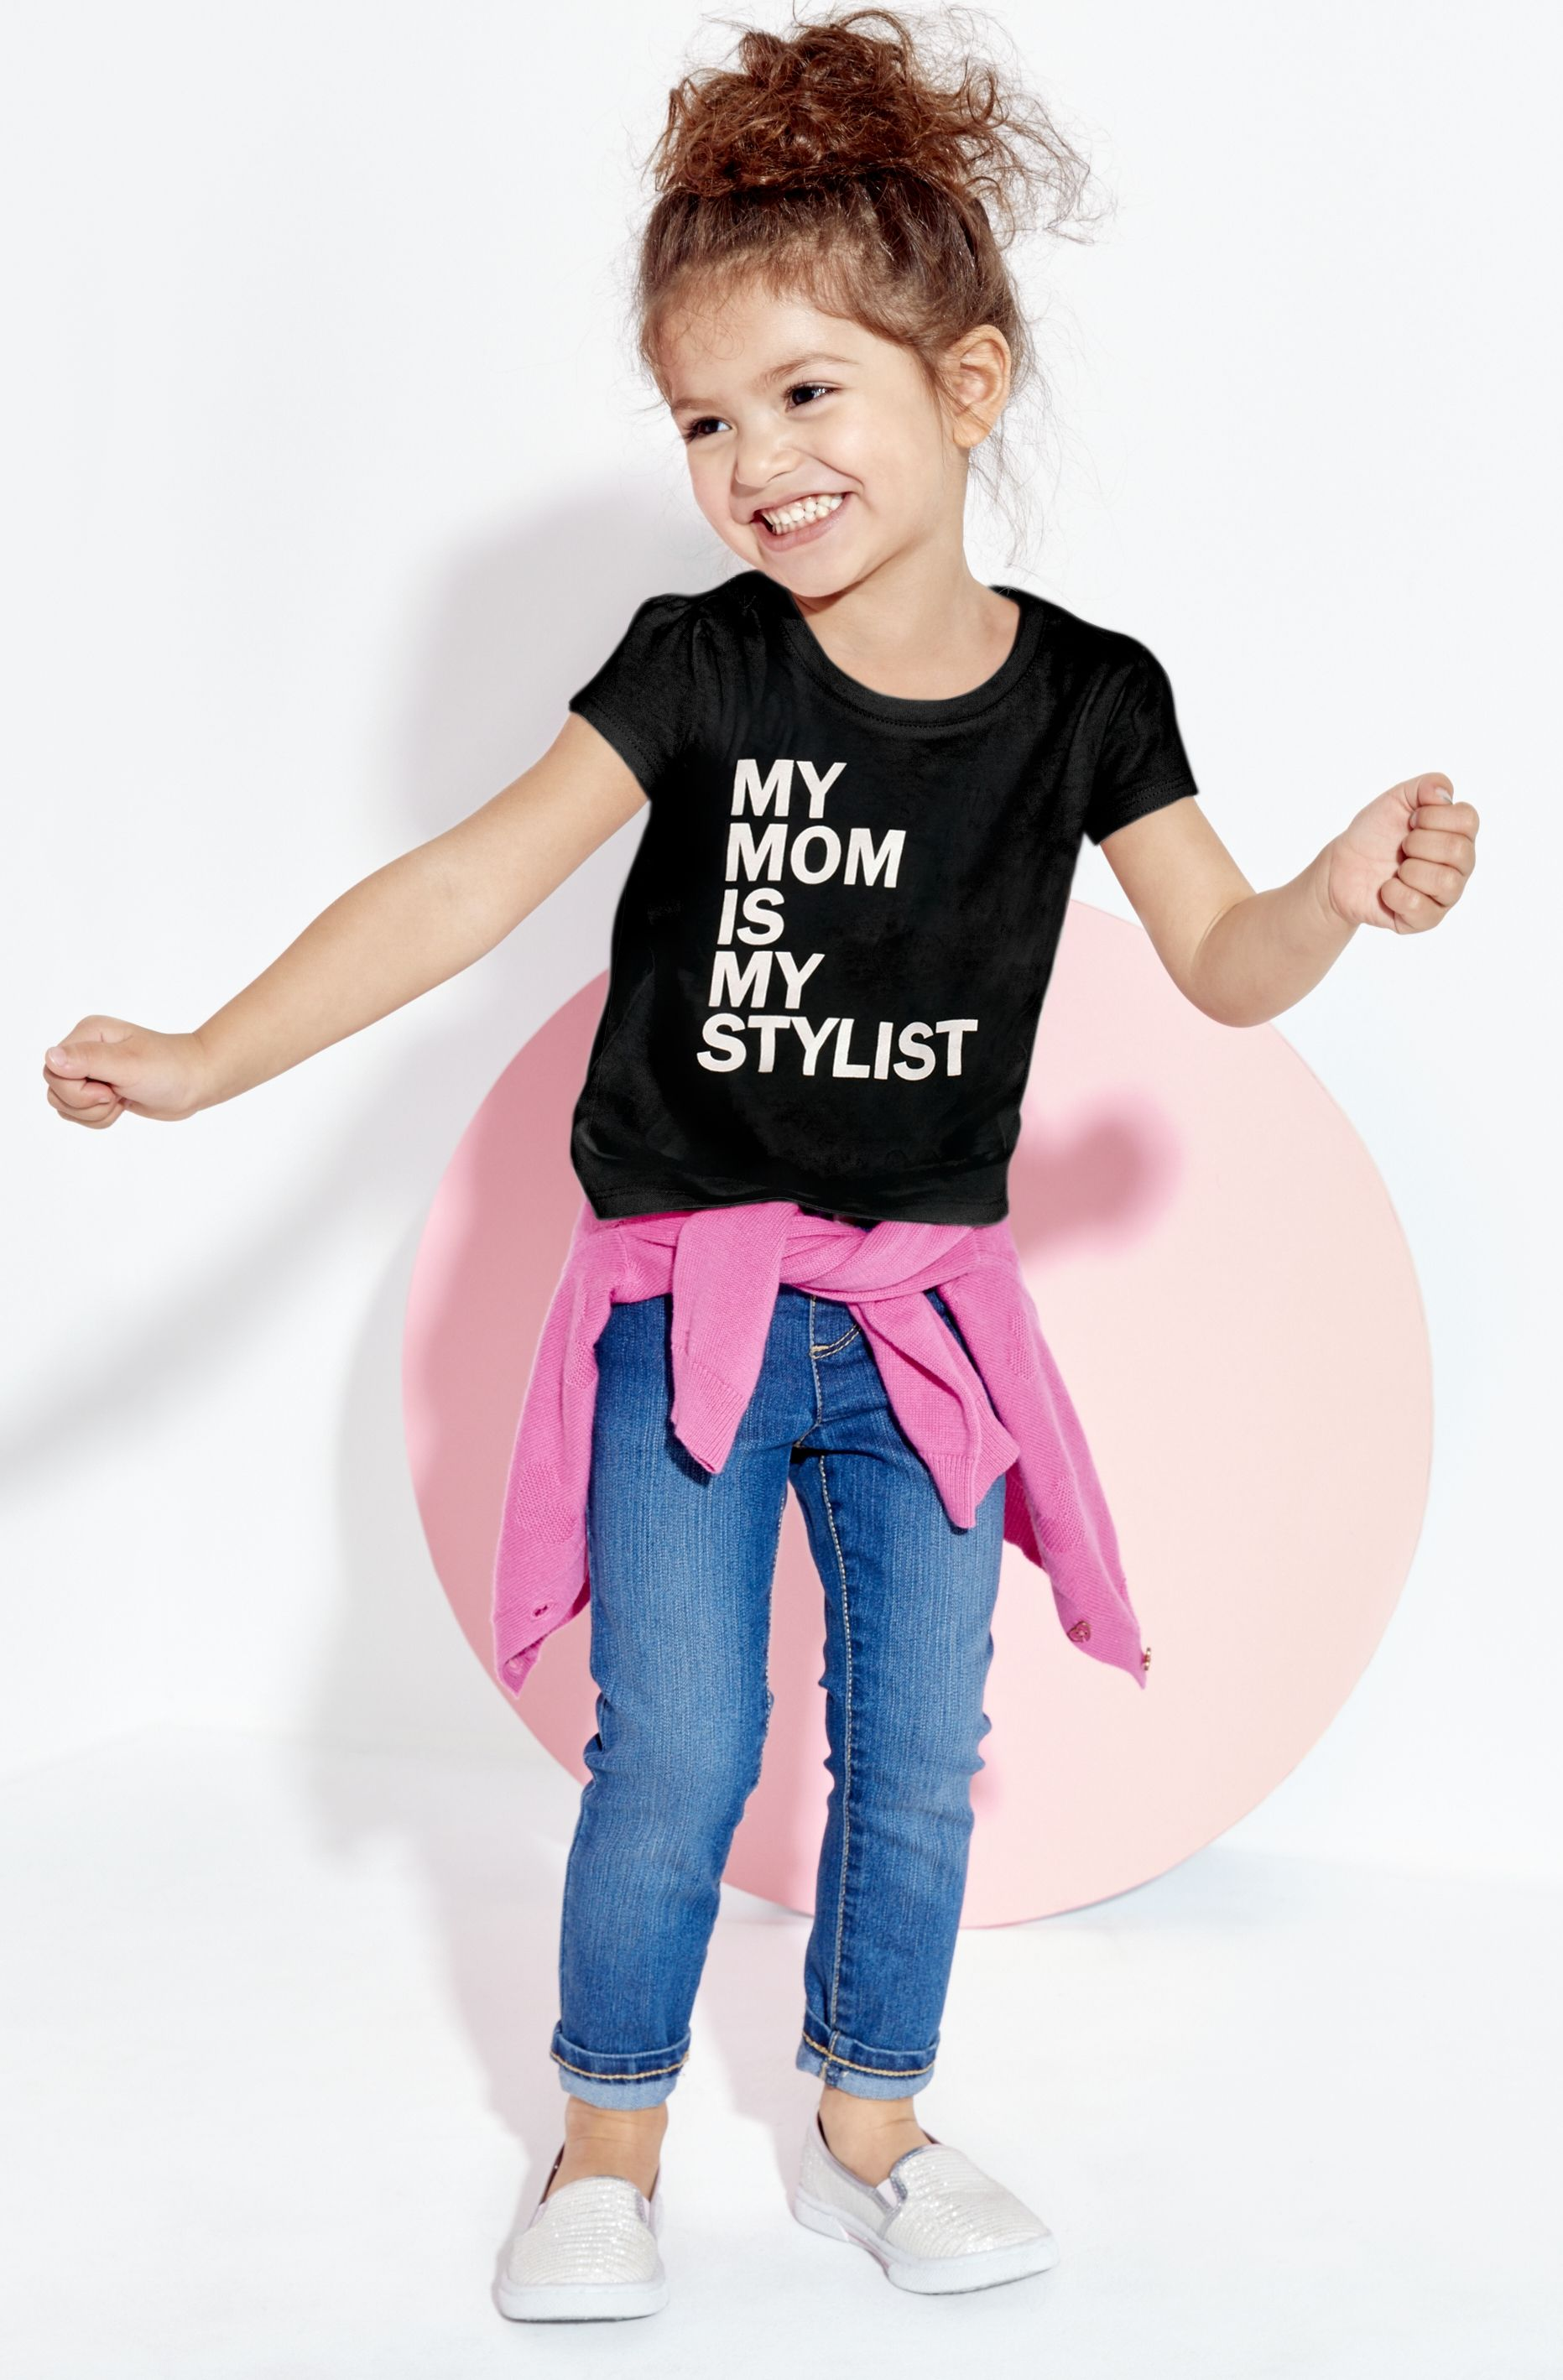 quotmy mom is my stylistquot graphic tee dress out loud